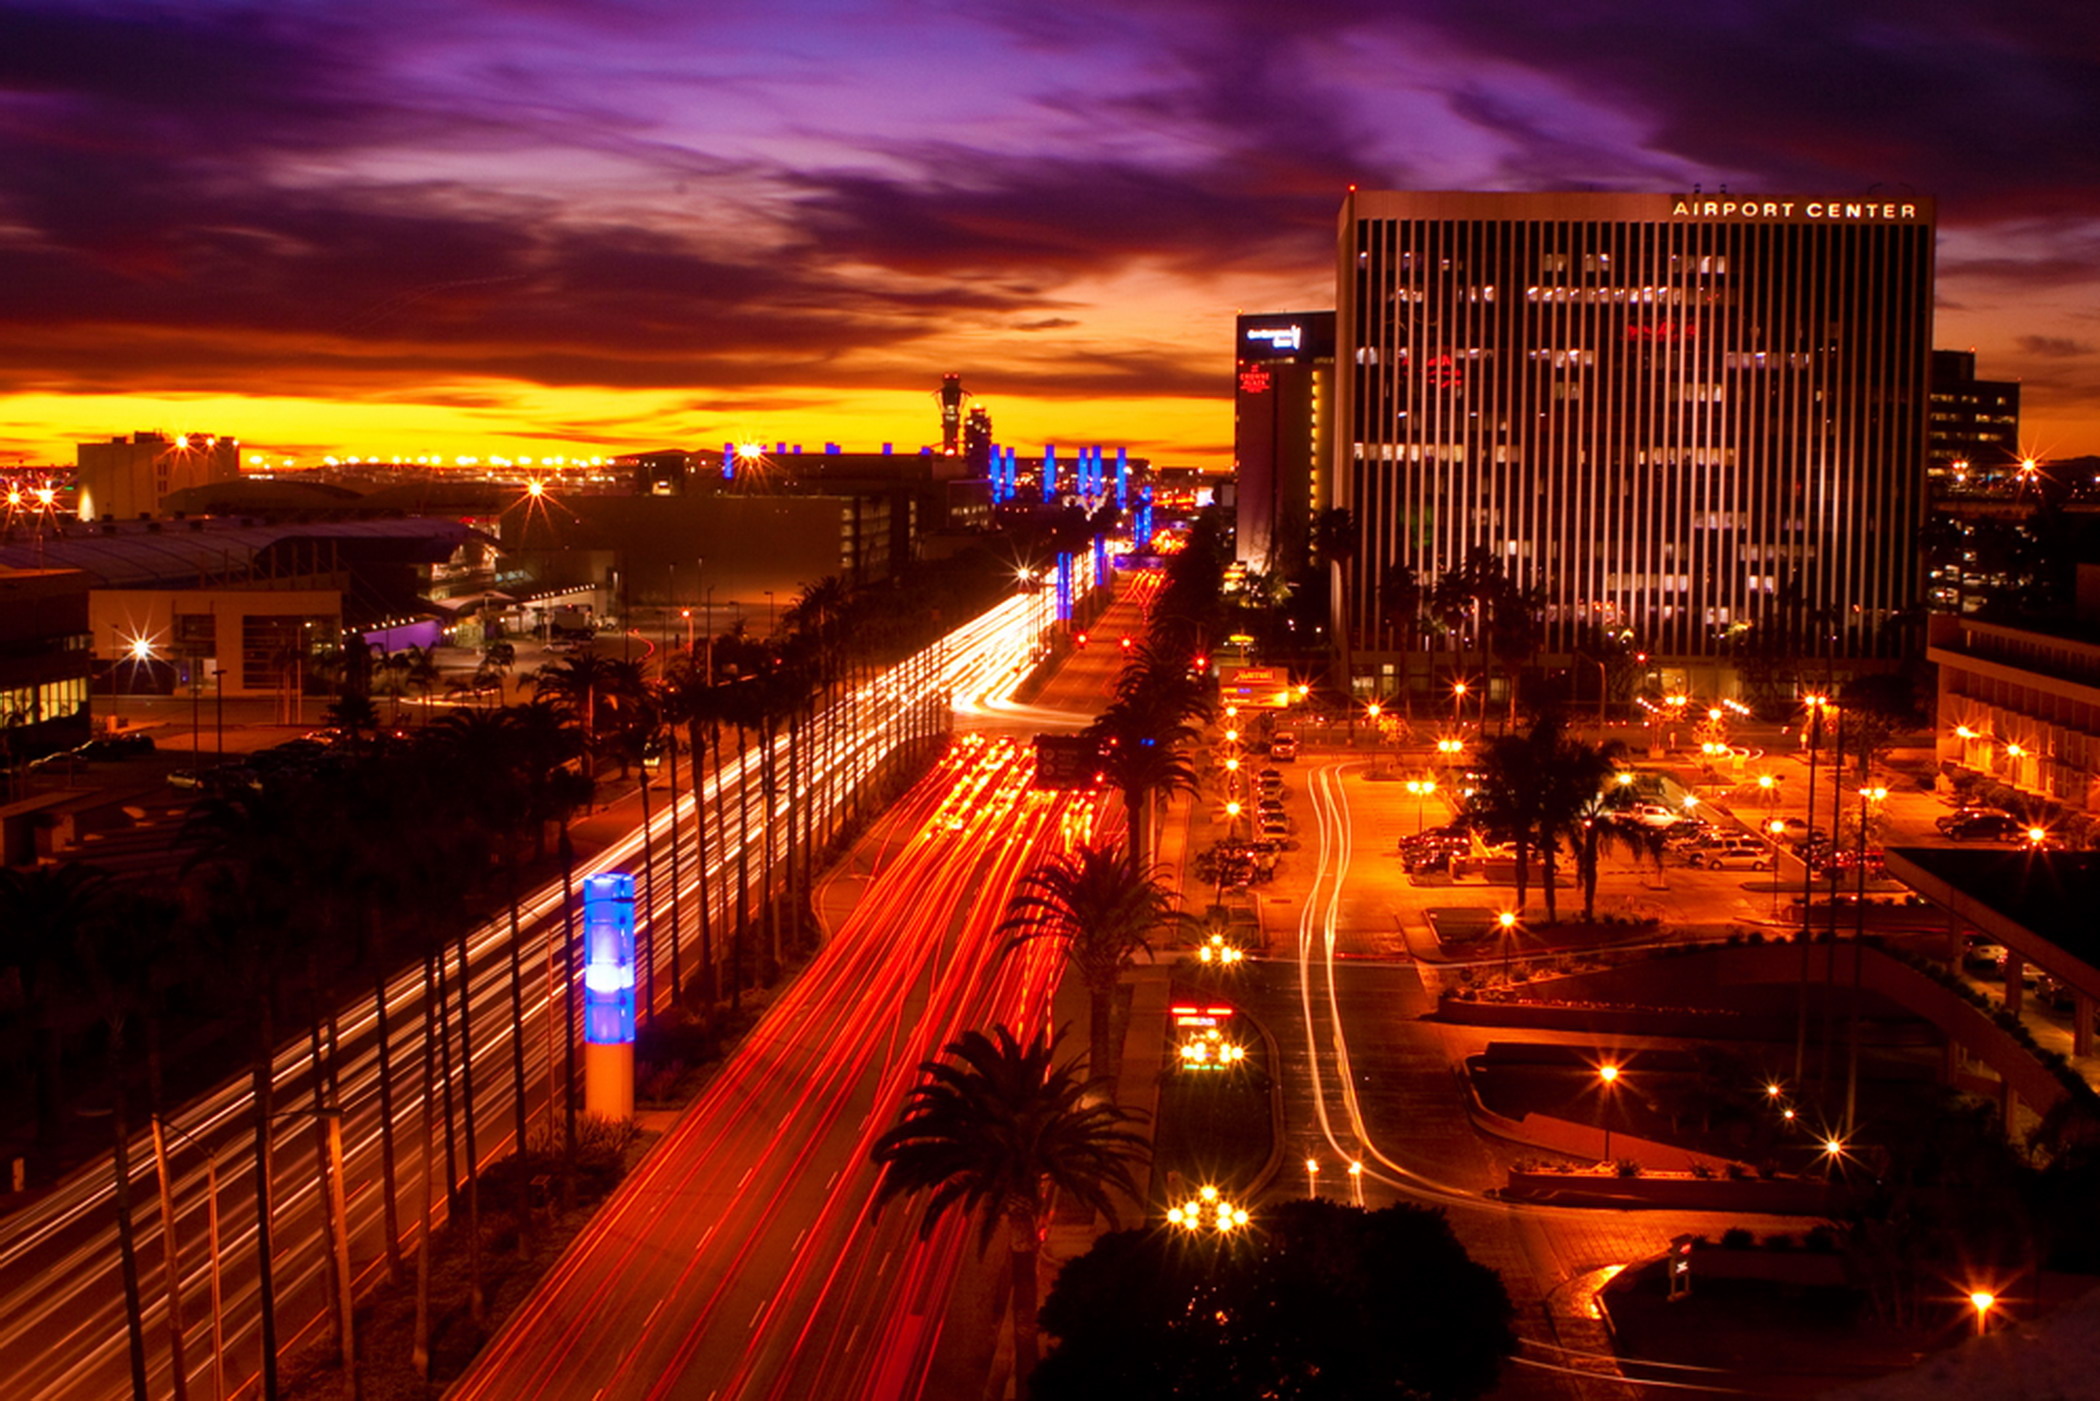 Gateway-LA-sunset-_MG_8718